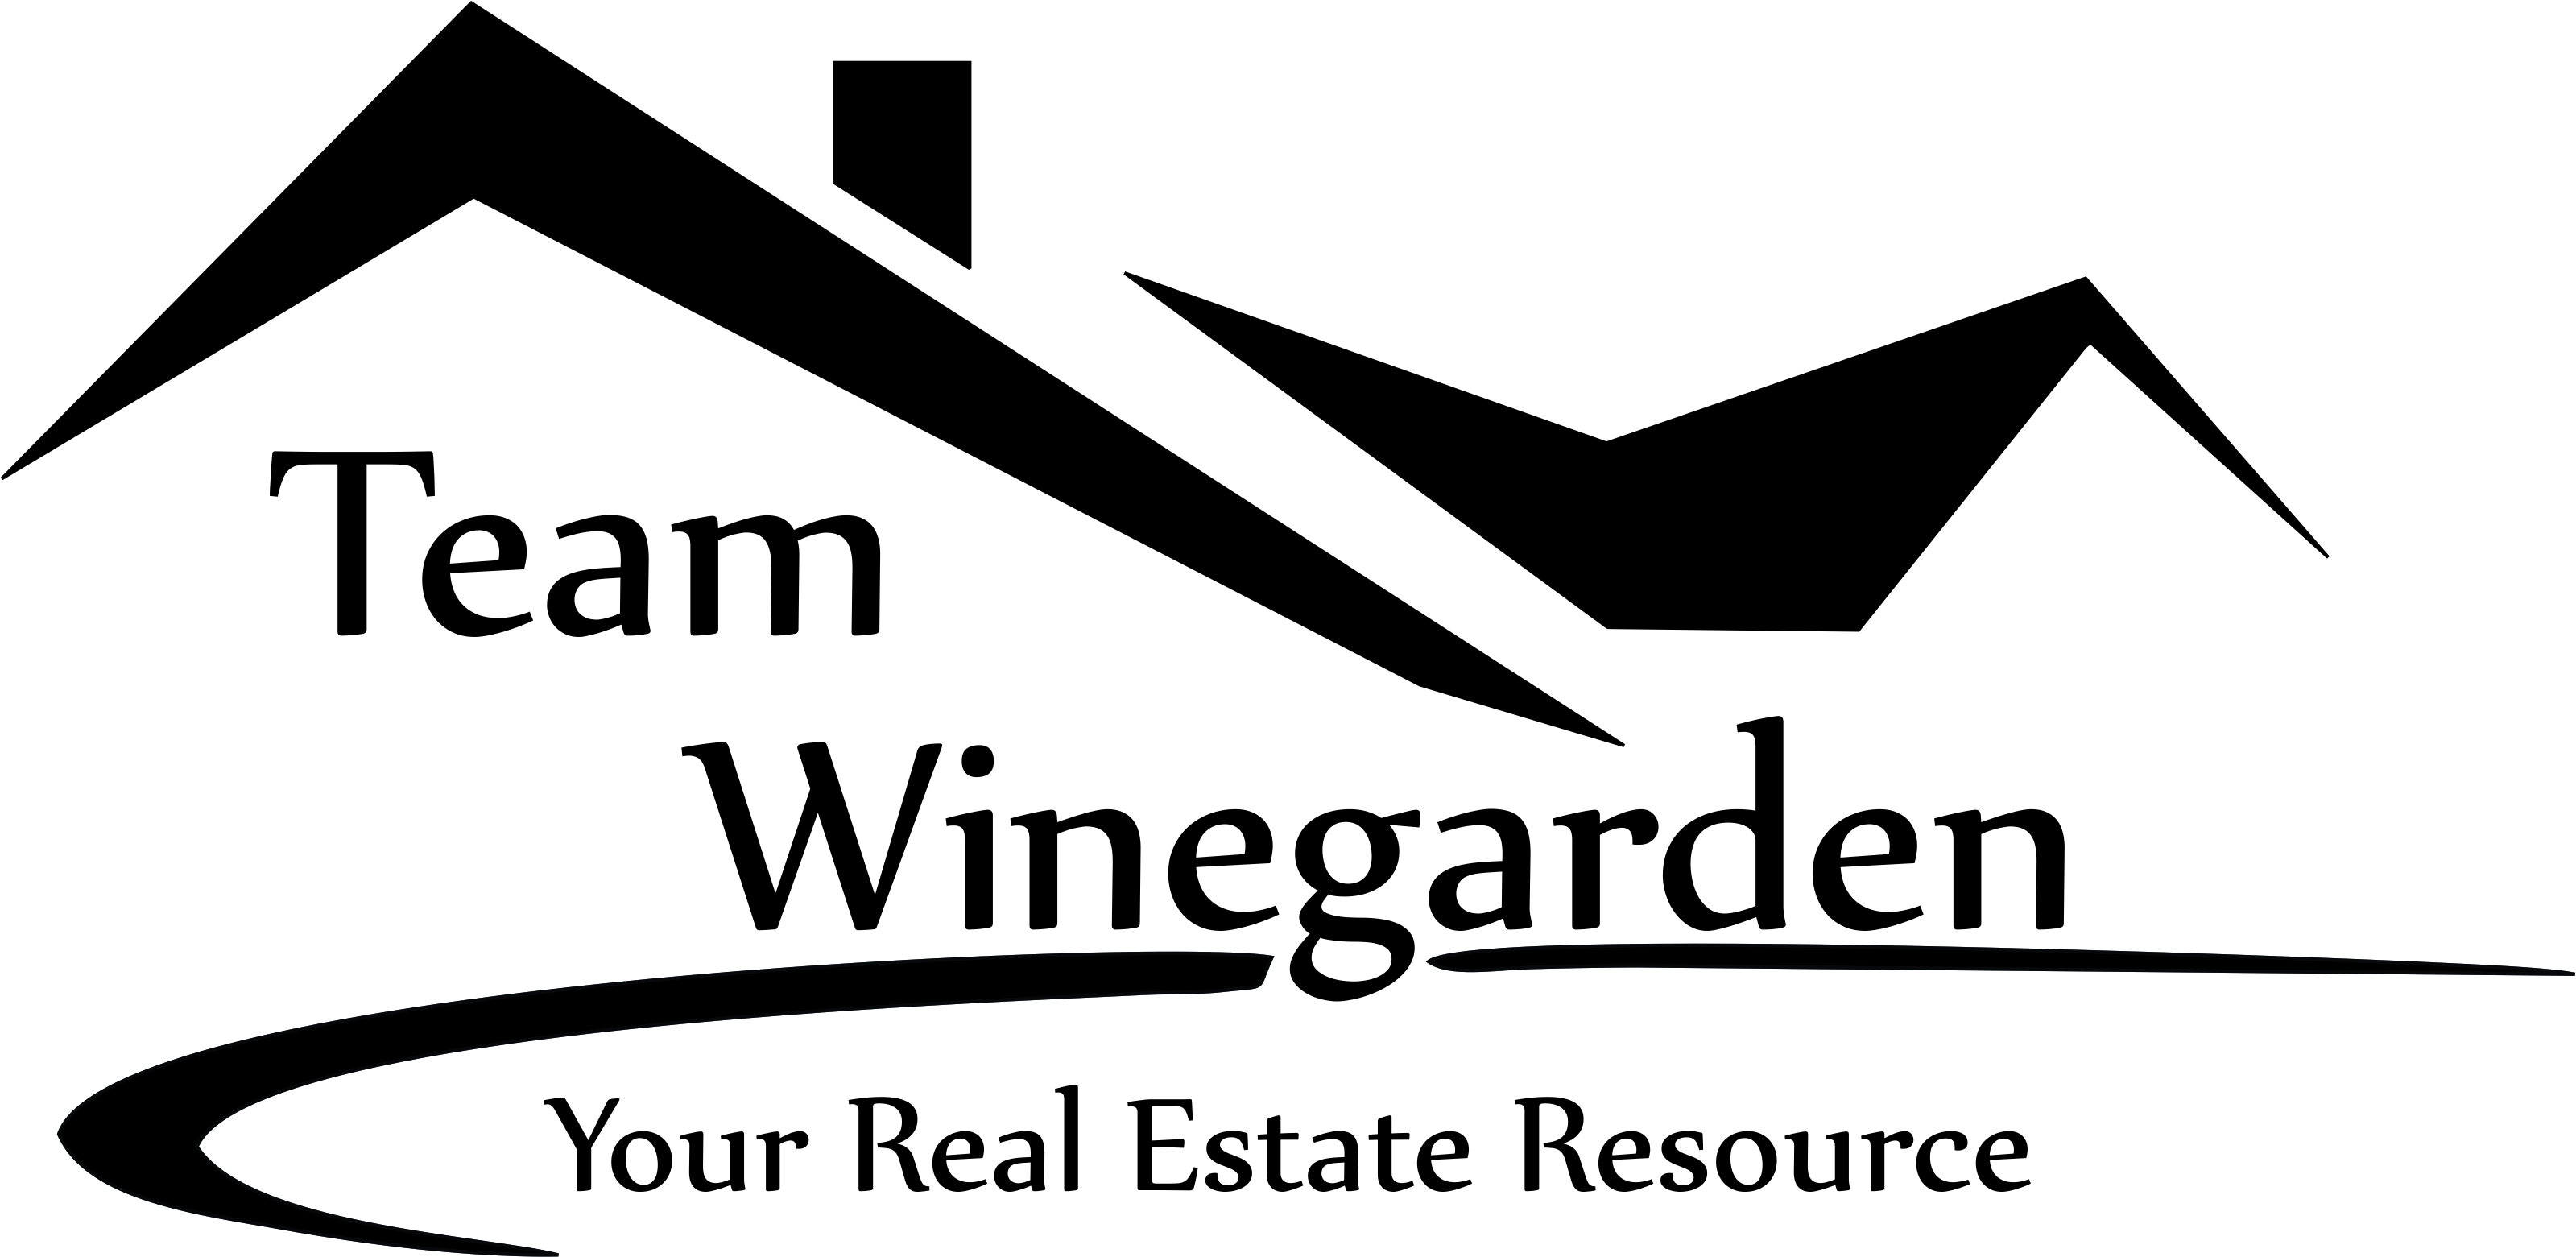 Team Winegarden of Keller Williams logo